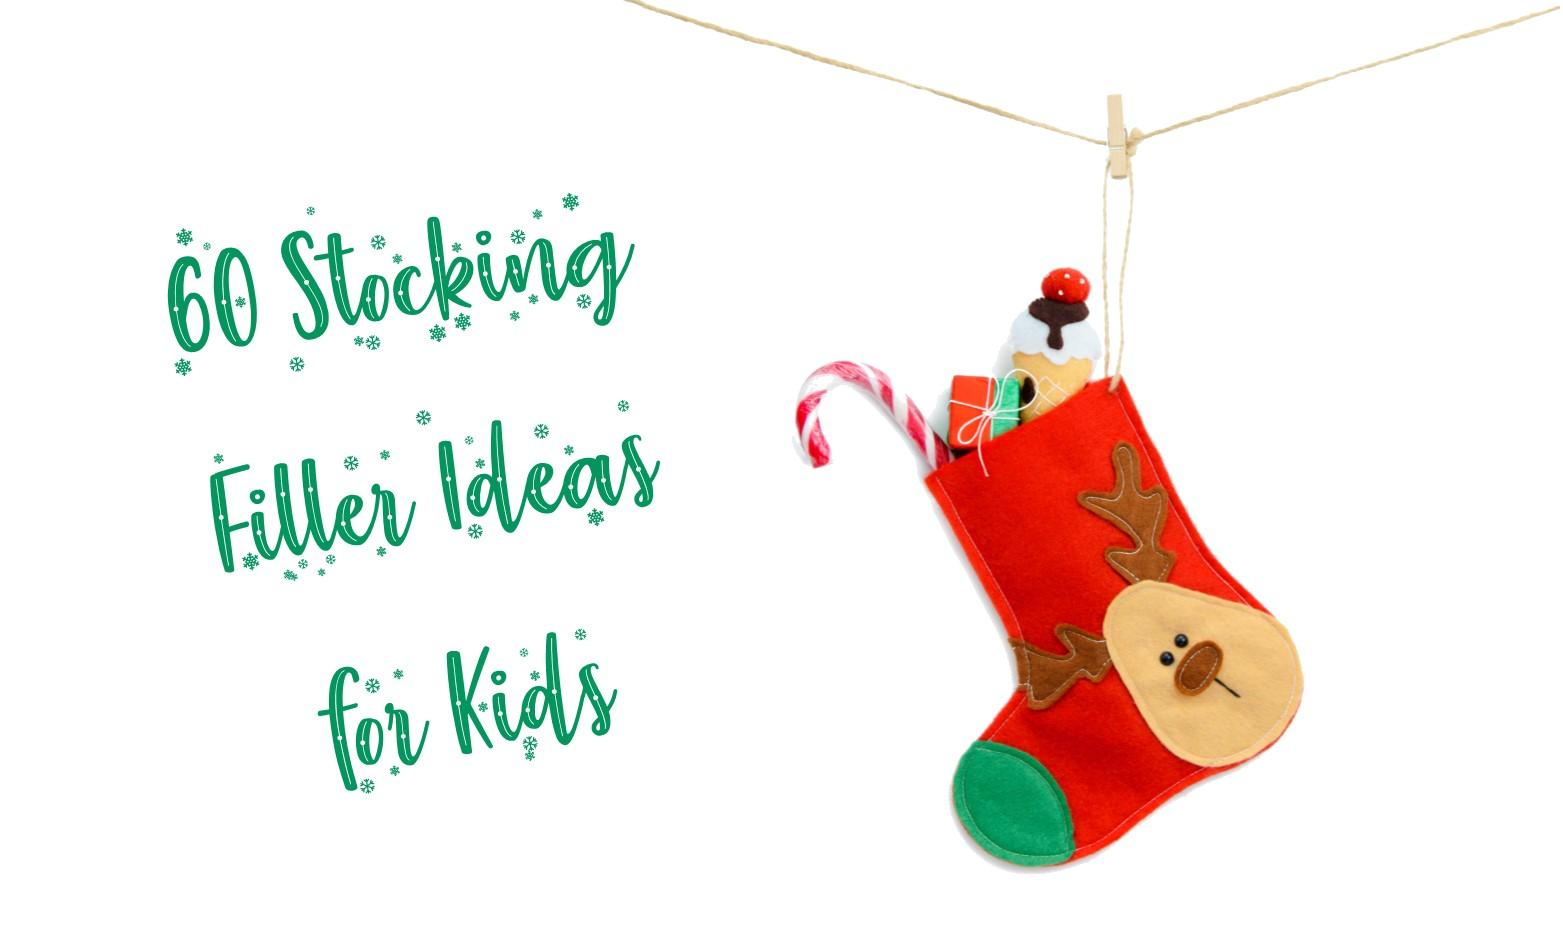 60 Stocking Filler Ideas for Kids